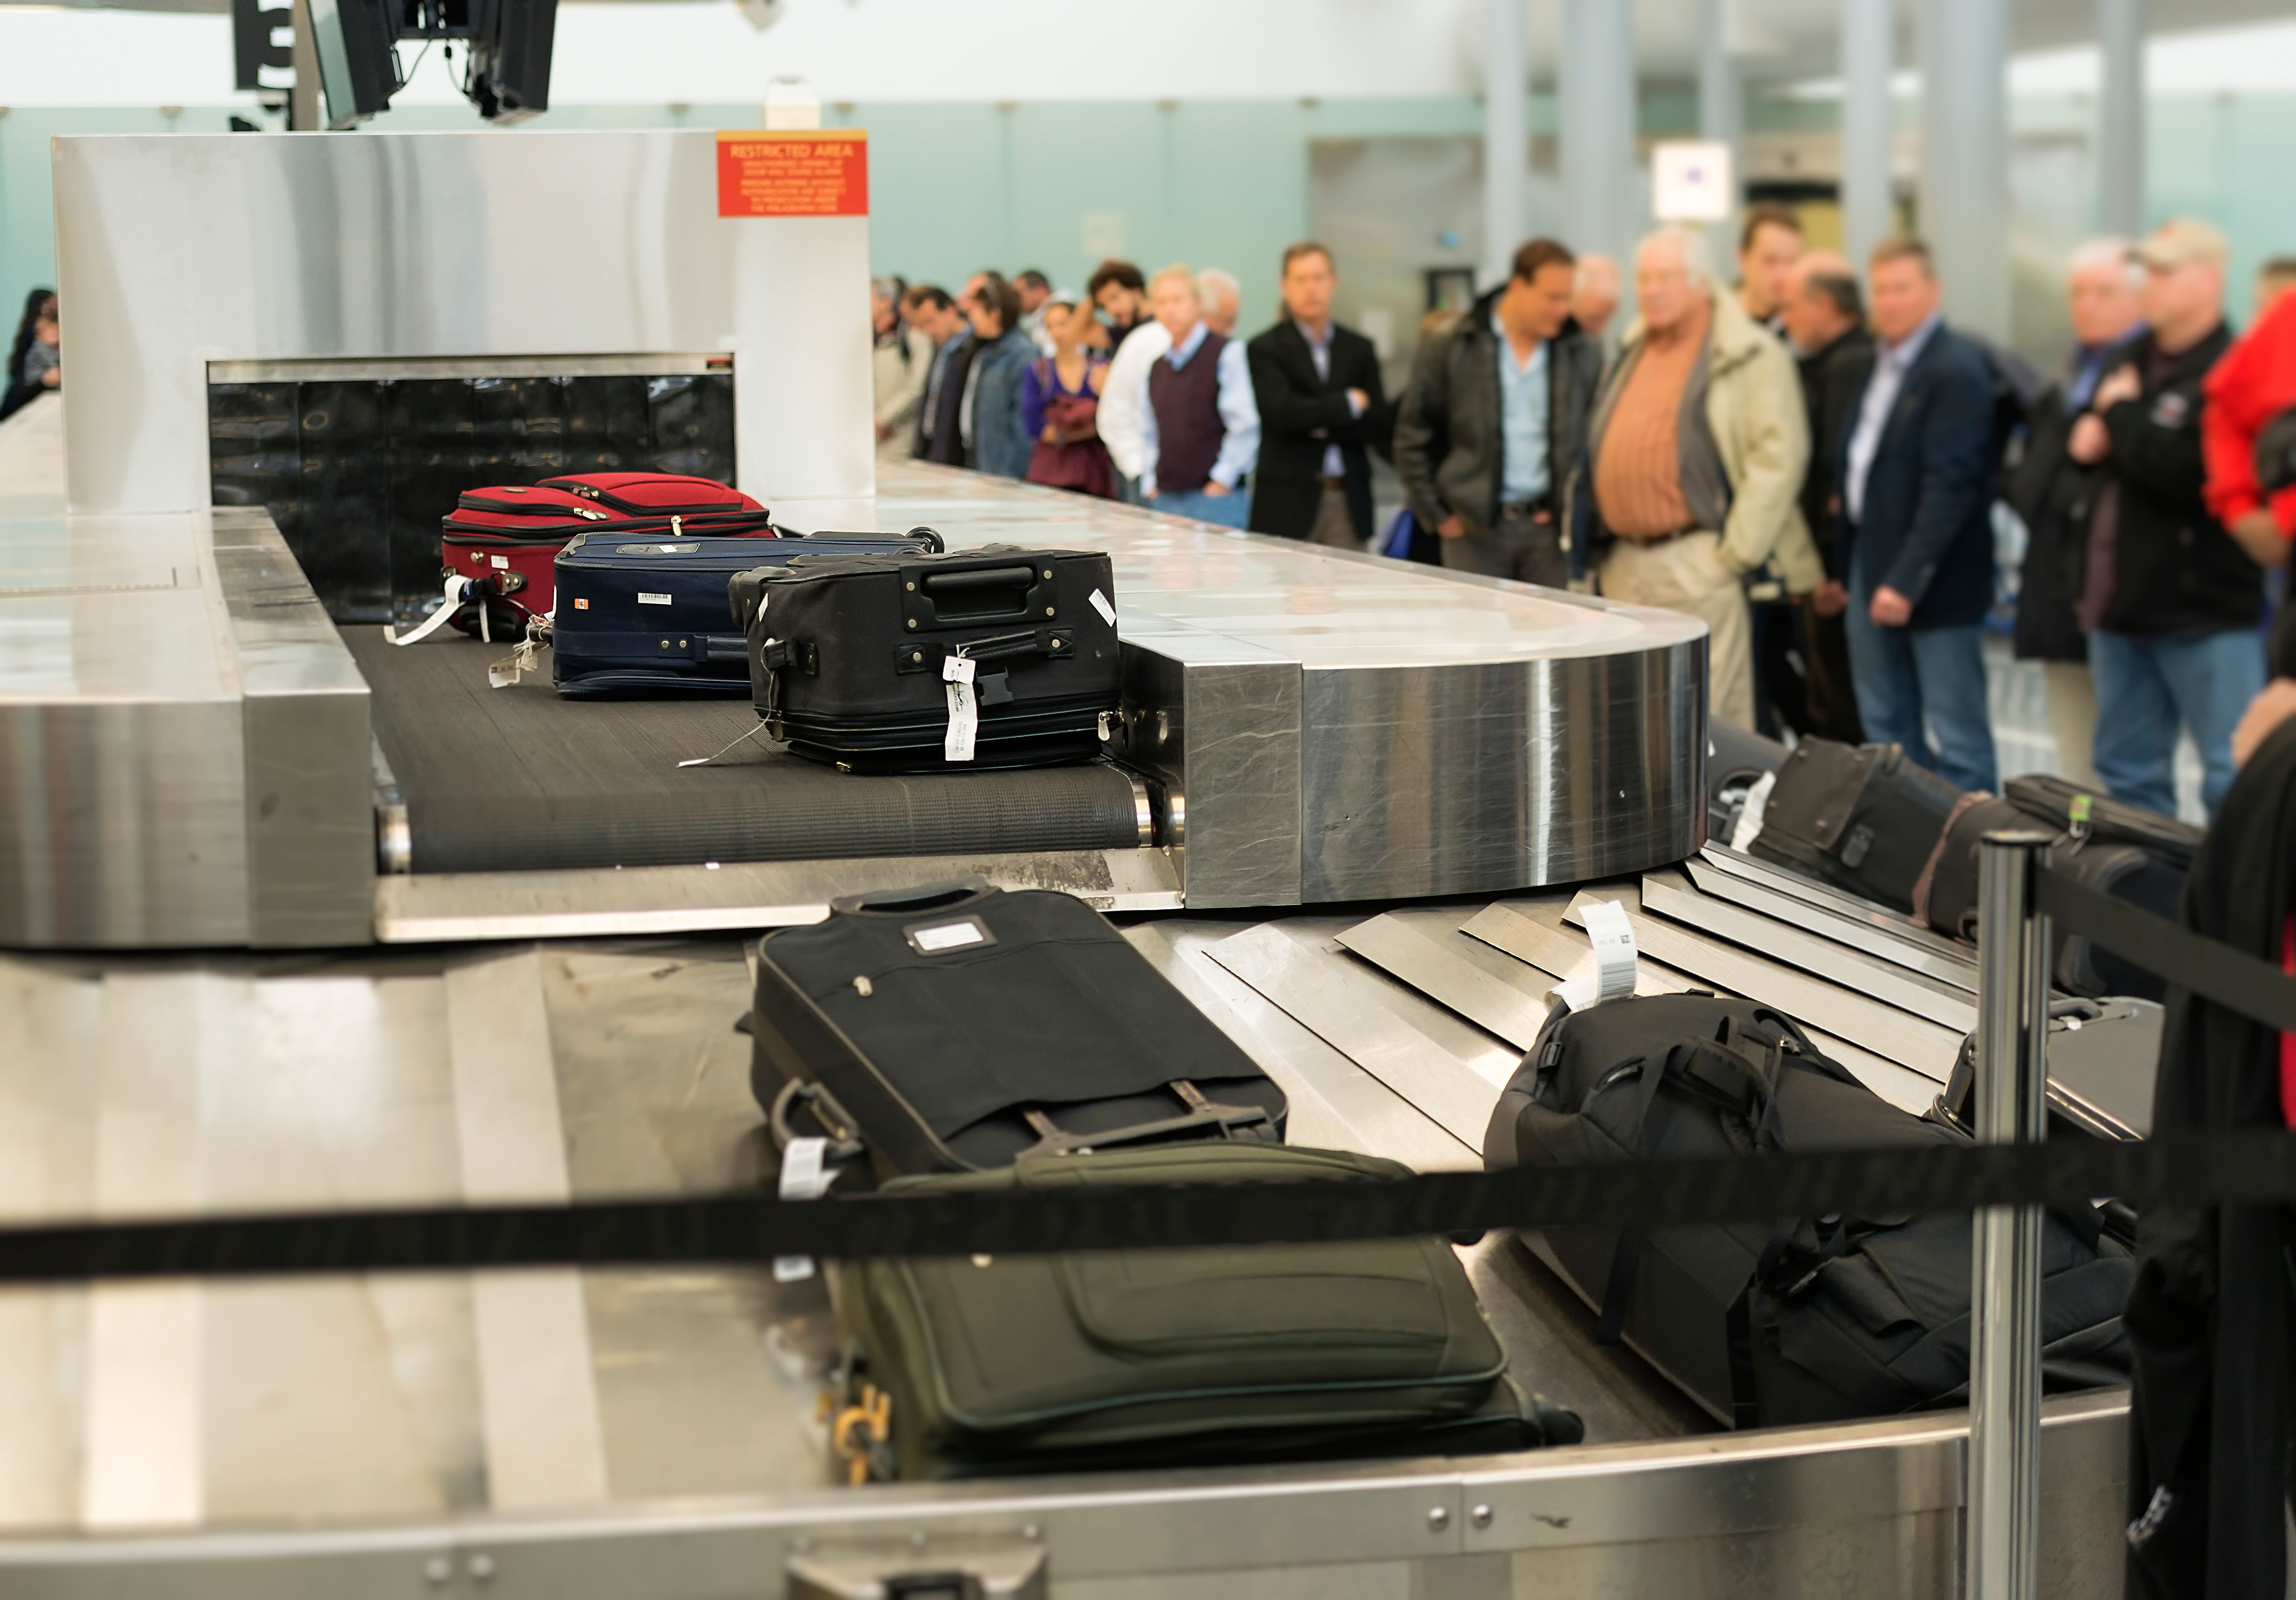 ' ' from the web at 'http://airlines.org/wp-content/uploads/2015/05/baggage-claim-Alamy.jpg'